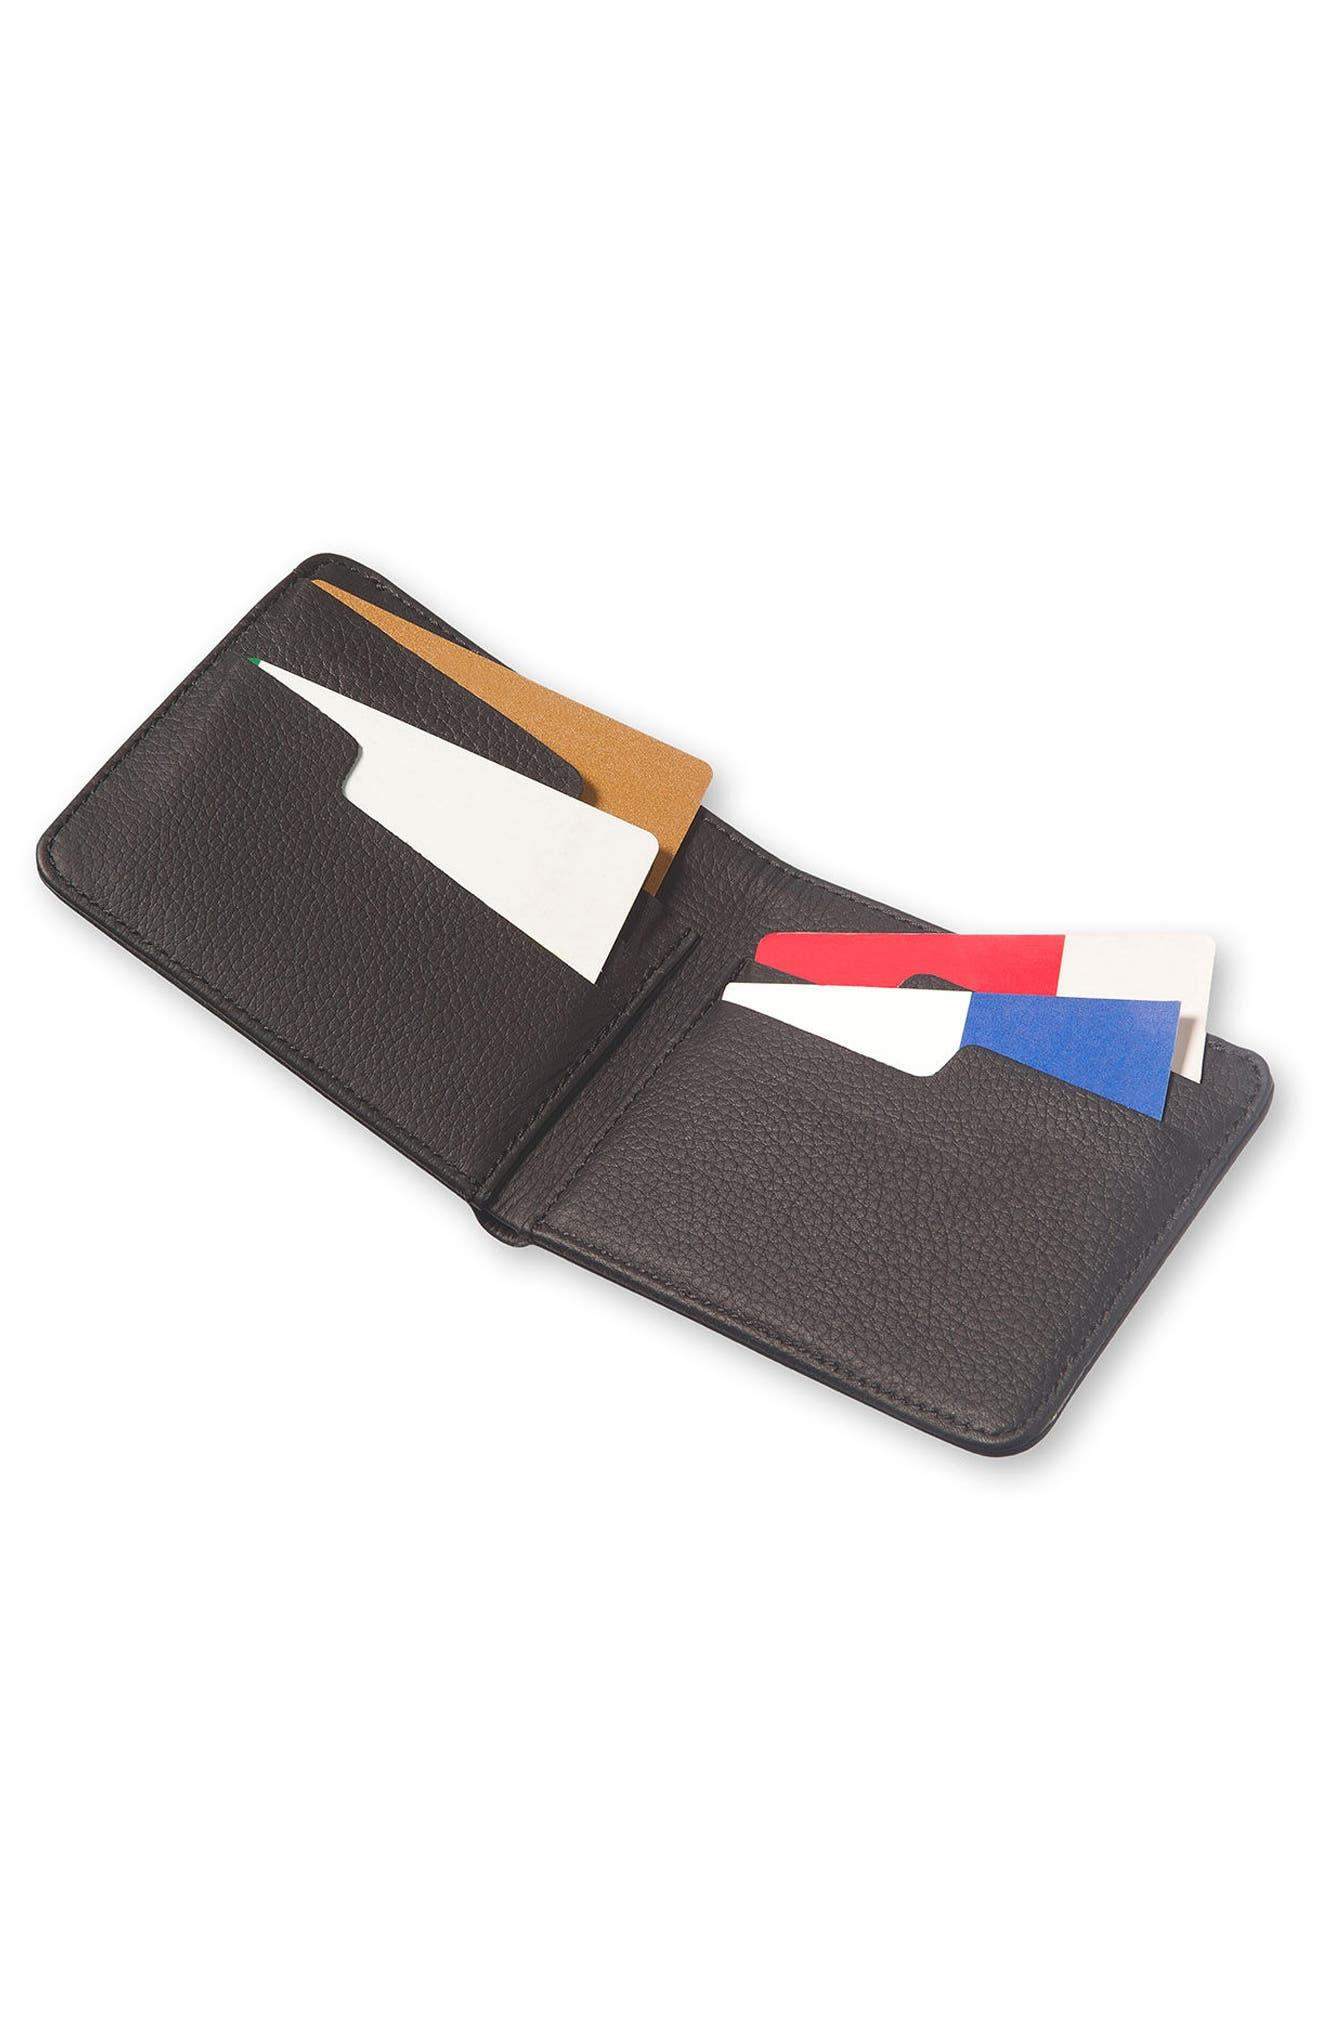 Lineage Leather Wallet,                             Alternate thumbnail 4, color,                             BLACK